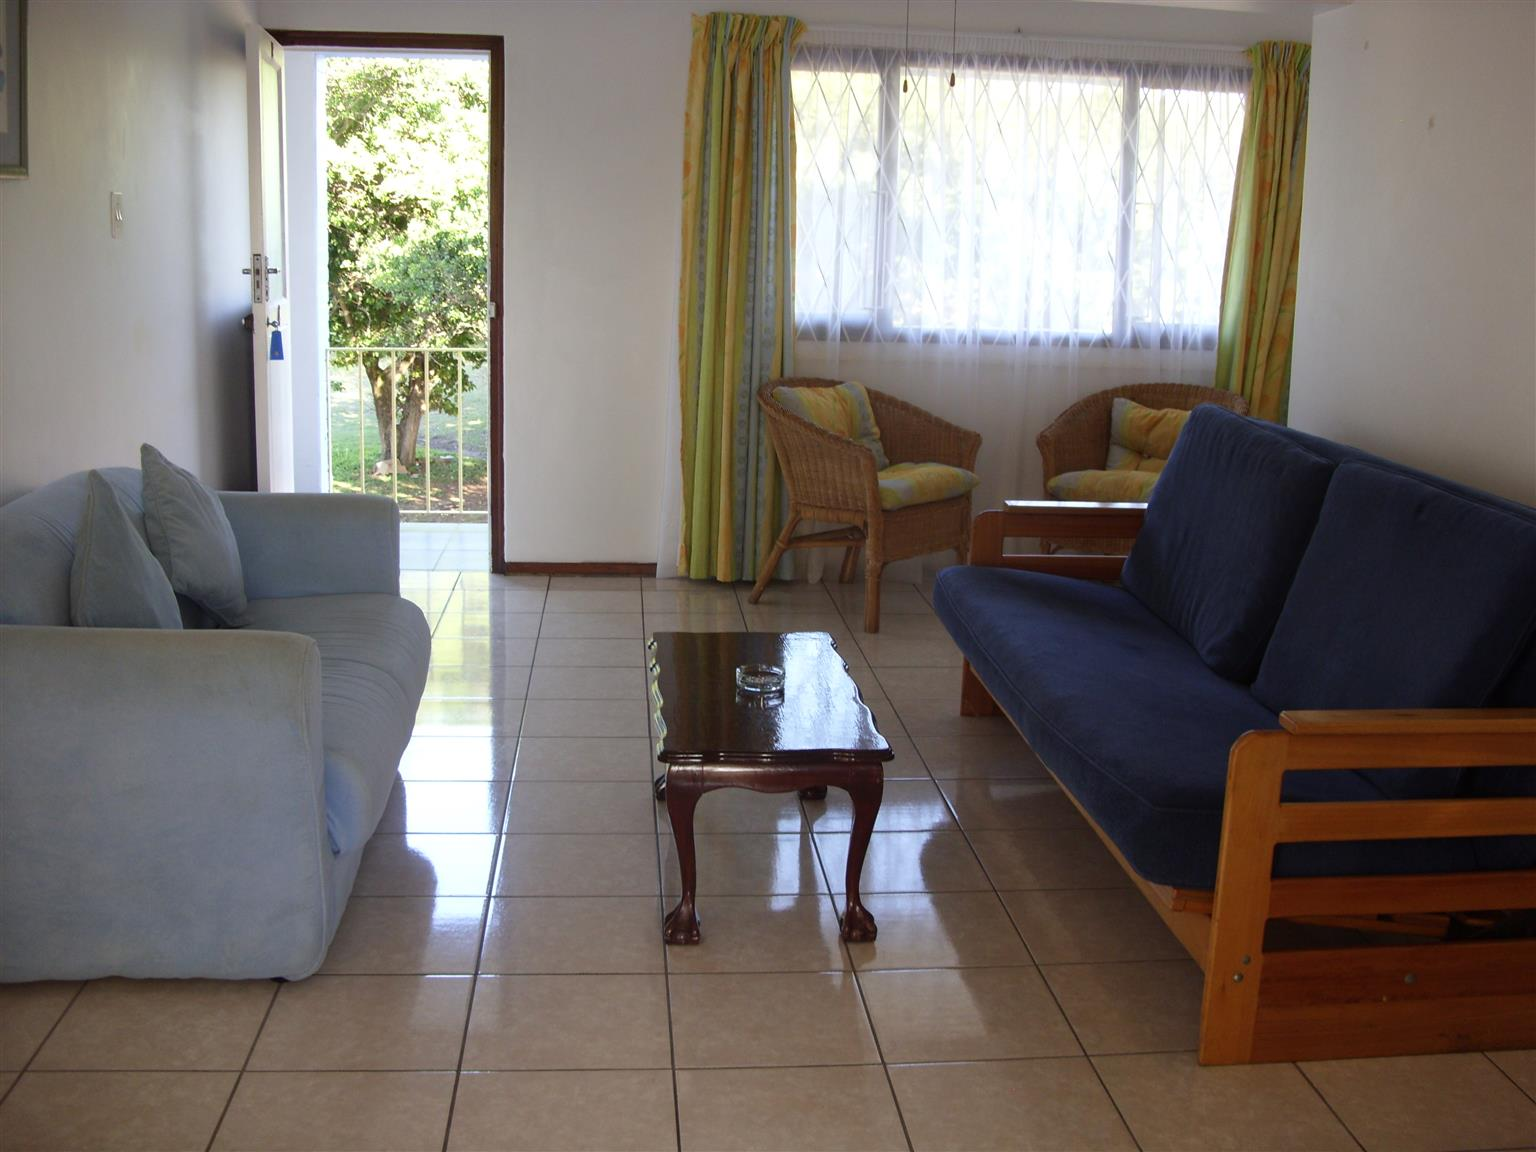 GOOD ROI. INCOME PAYS A 100% BOND BLOCK OF FLATS FOR SALE ST MICHAELS-ON-SEA R2,550,000 TENANTED 1, 2 & 3 BEDROOMS